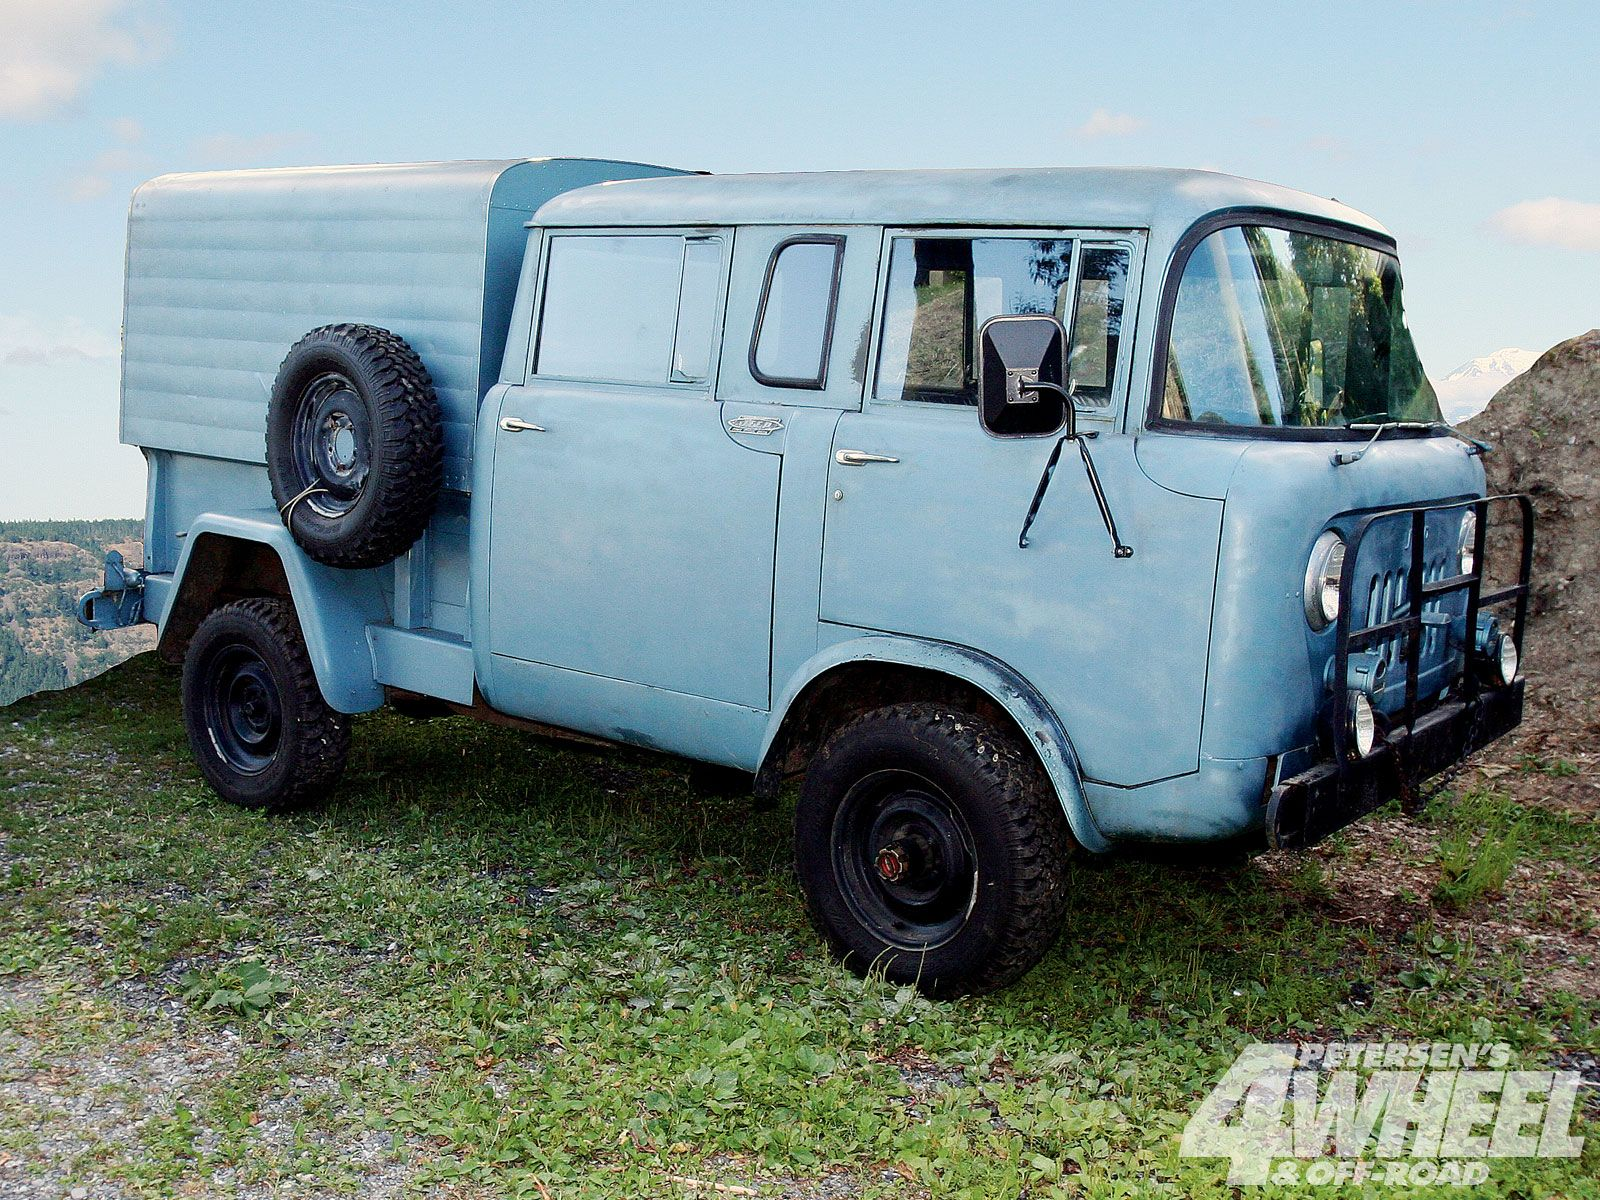 Willys FC 170 Willys Jeep FC 170 s